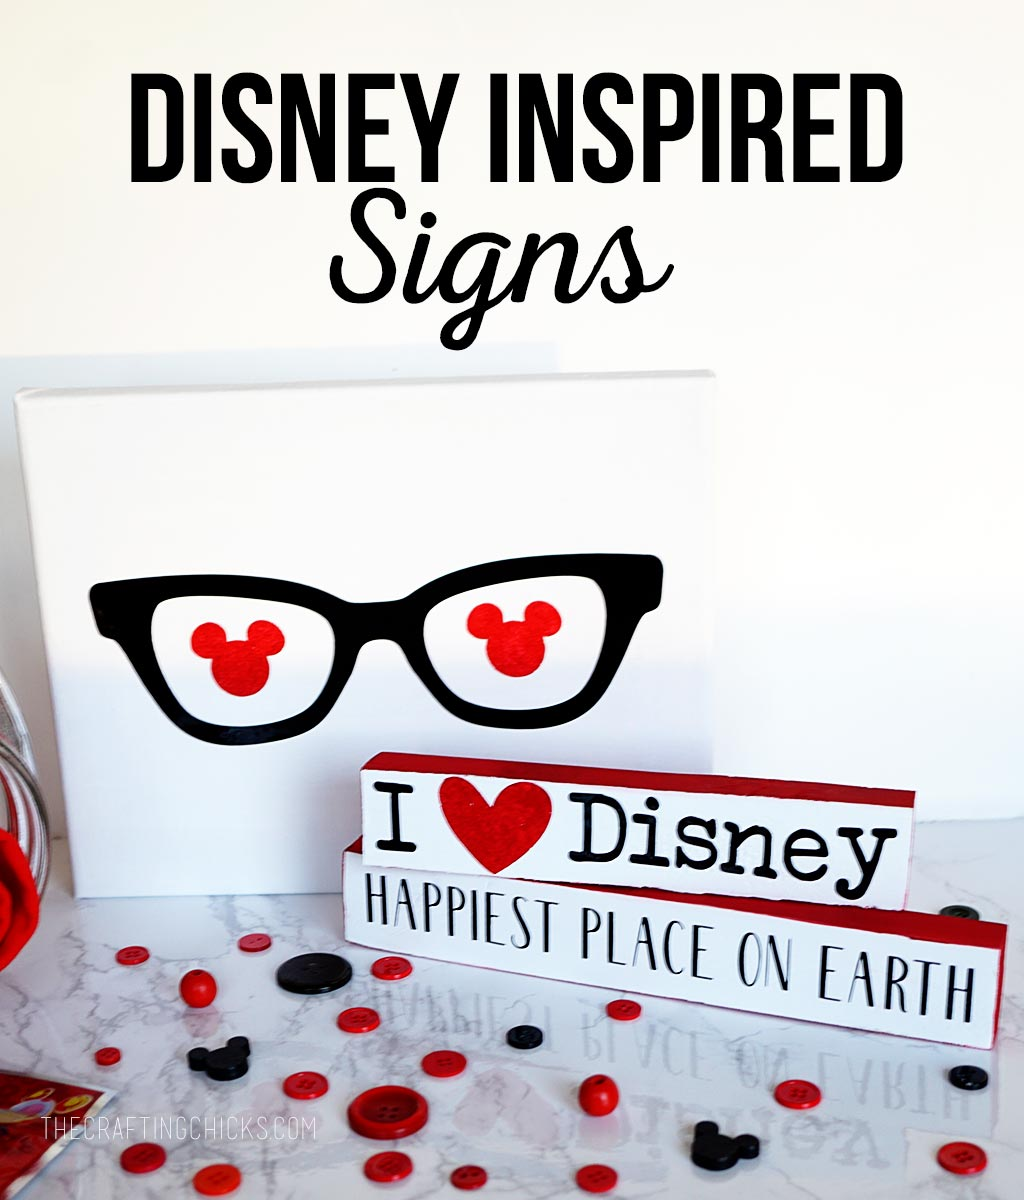 Disney Inspired Signs | These Disney Signs are an inexpensive and cute gift idea for those people on your Christmas list.